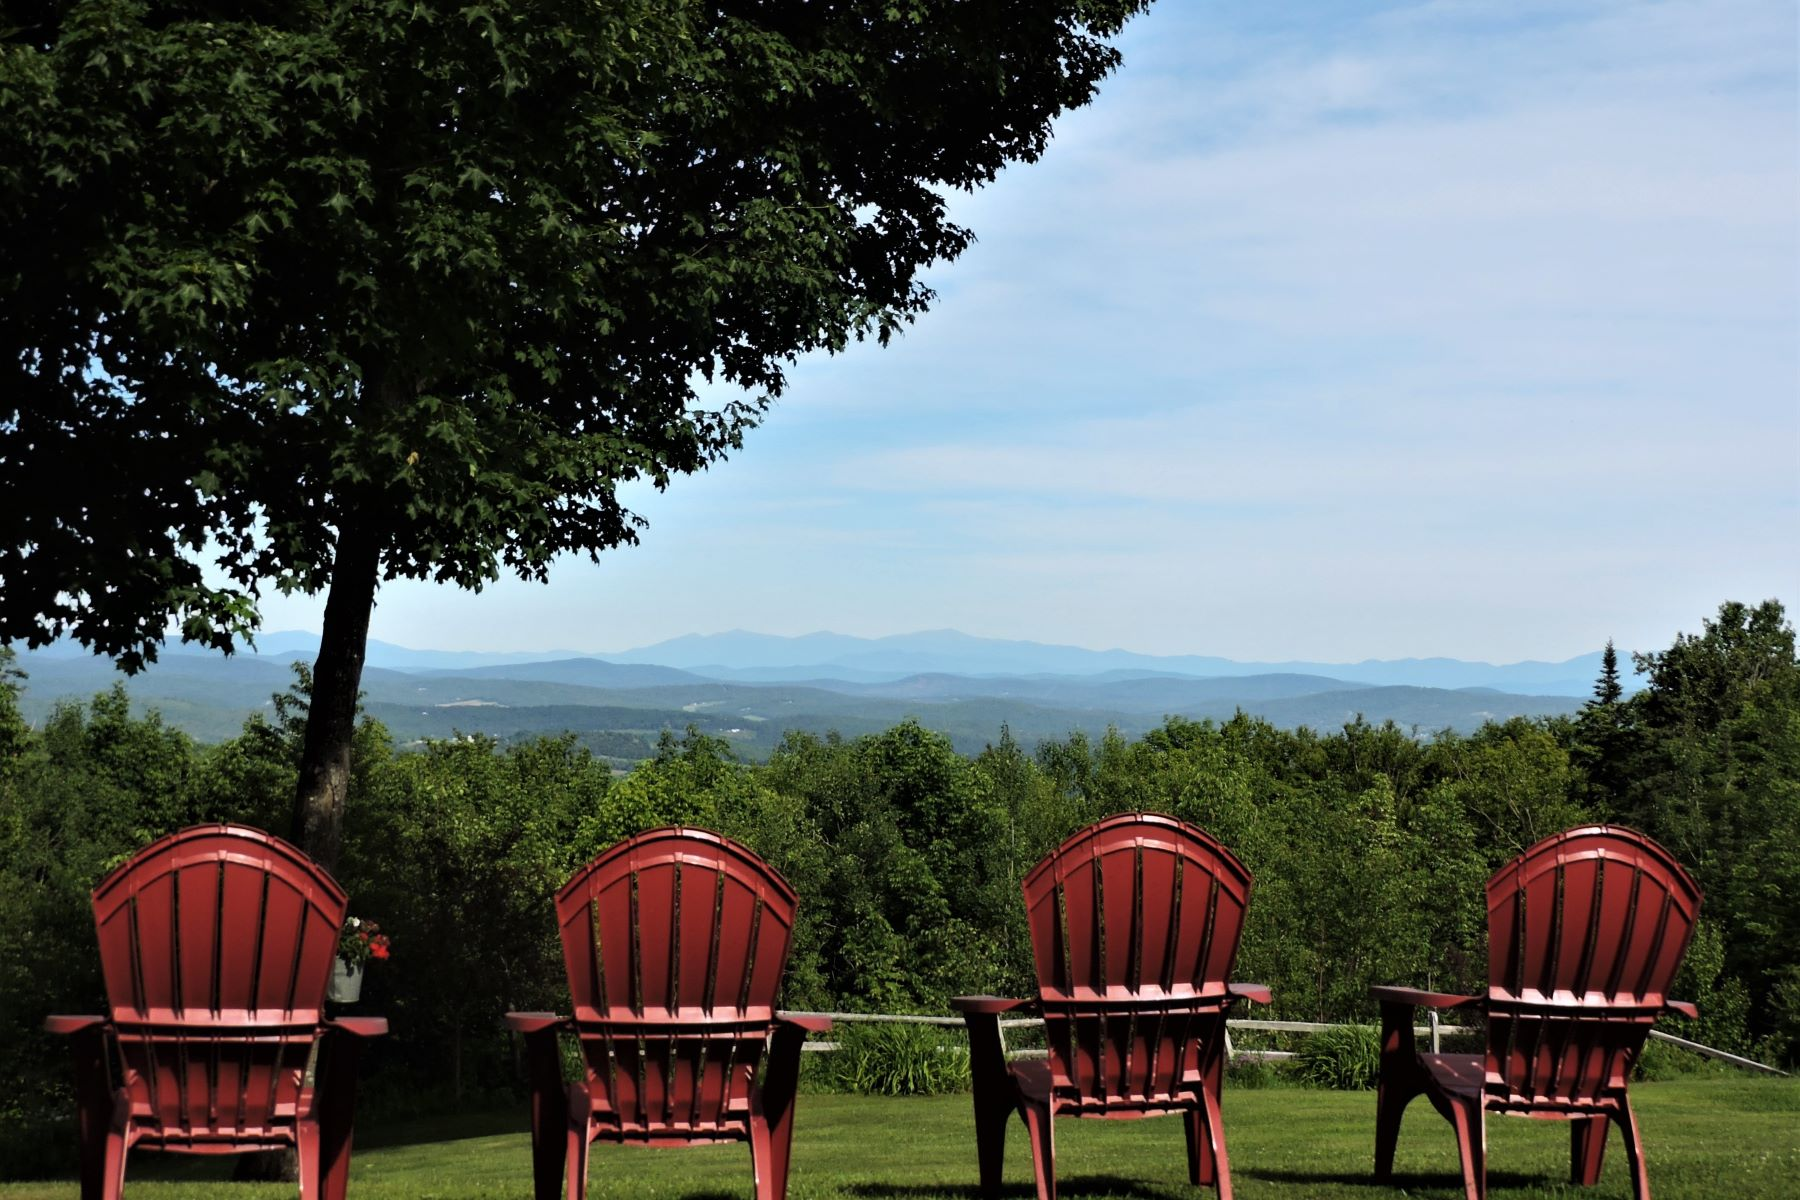 Single Family Homes for Sale at 480 Walden Mountain Road, Walden 480 Walden Mountain Rd Walden, Vermont 05873 United States